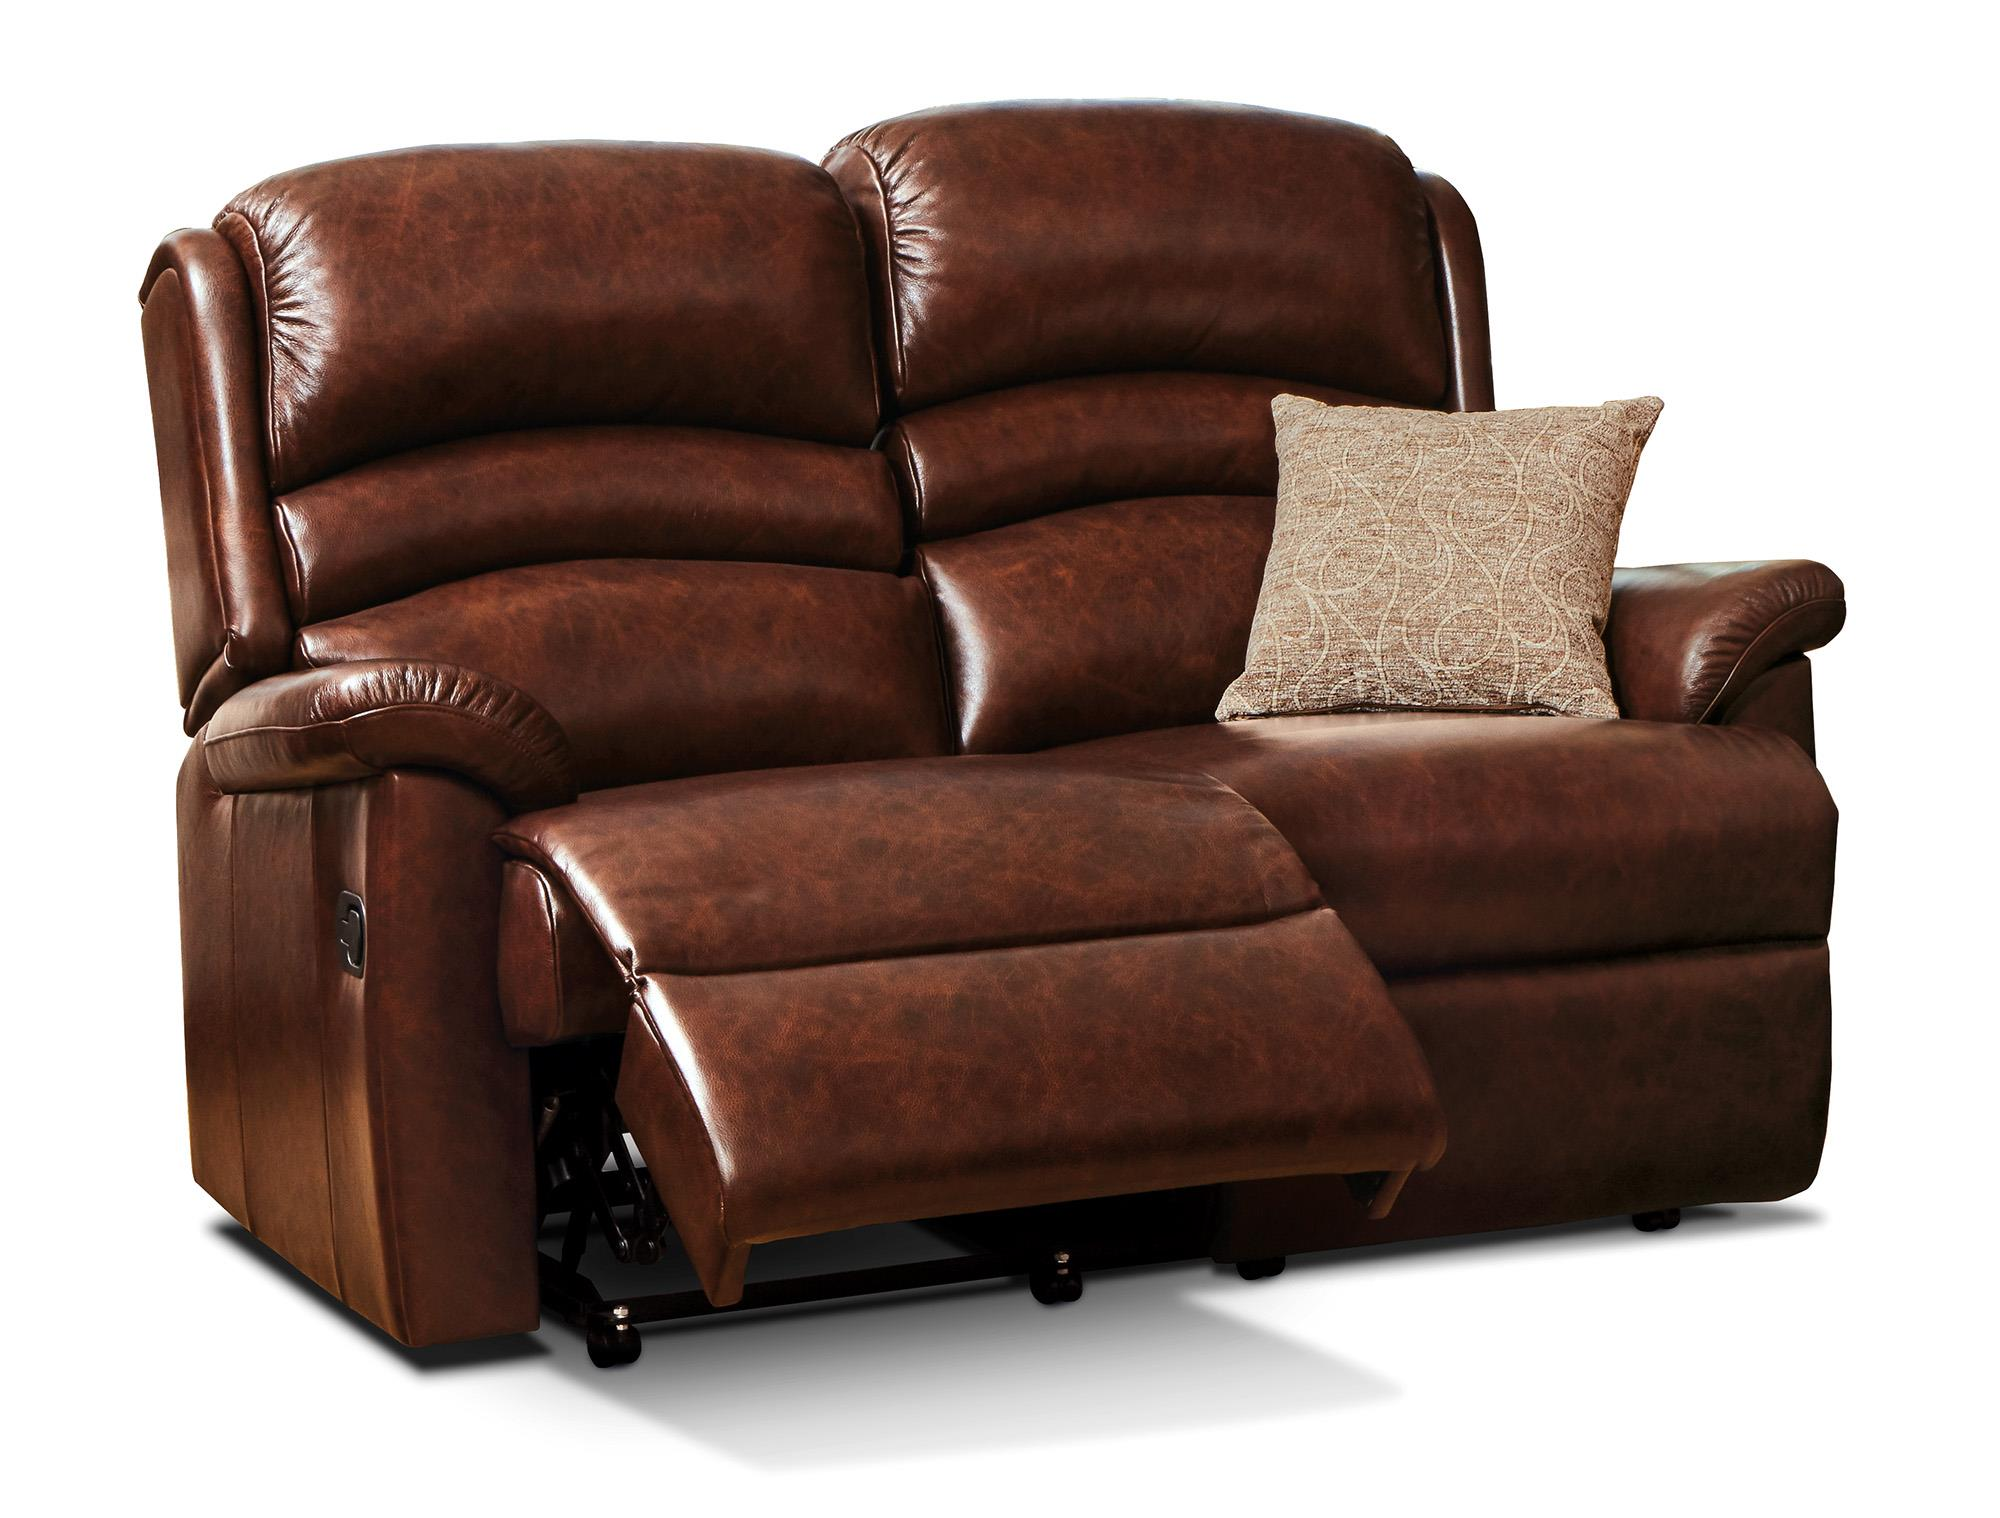 OLIVIA - Leather Reclining 2 Seat Settee